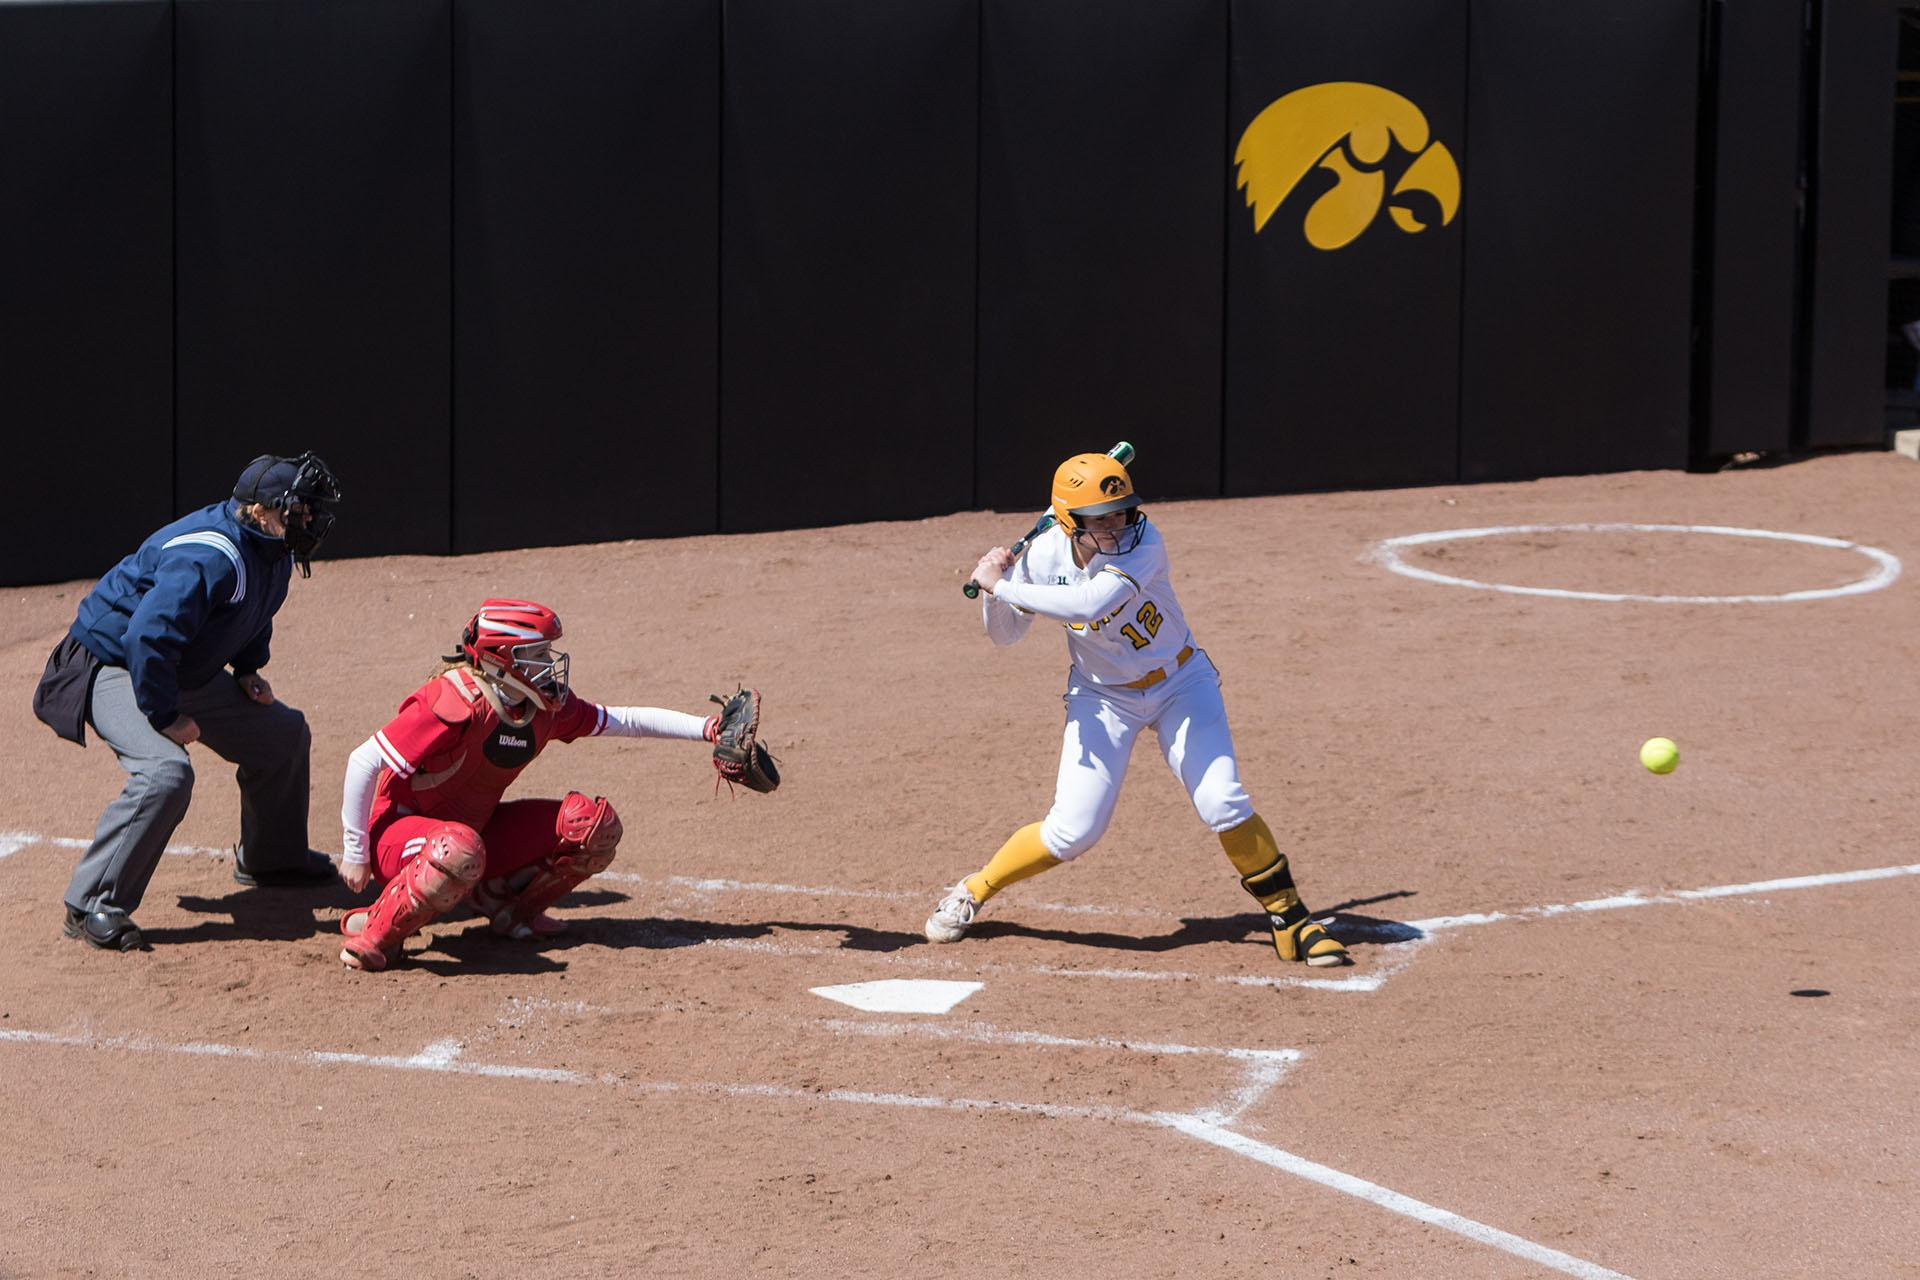 University of Iowa softball player Angela Schmiederer watches a pitch during a game against the University of Wisconsin on Saturday, Apr. 7, 2018. The Hawkeyes defeated the Badgers 3-0. (David Harmantas/The Daily Iowan)